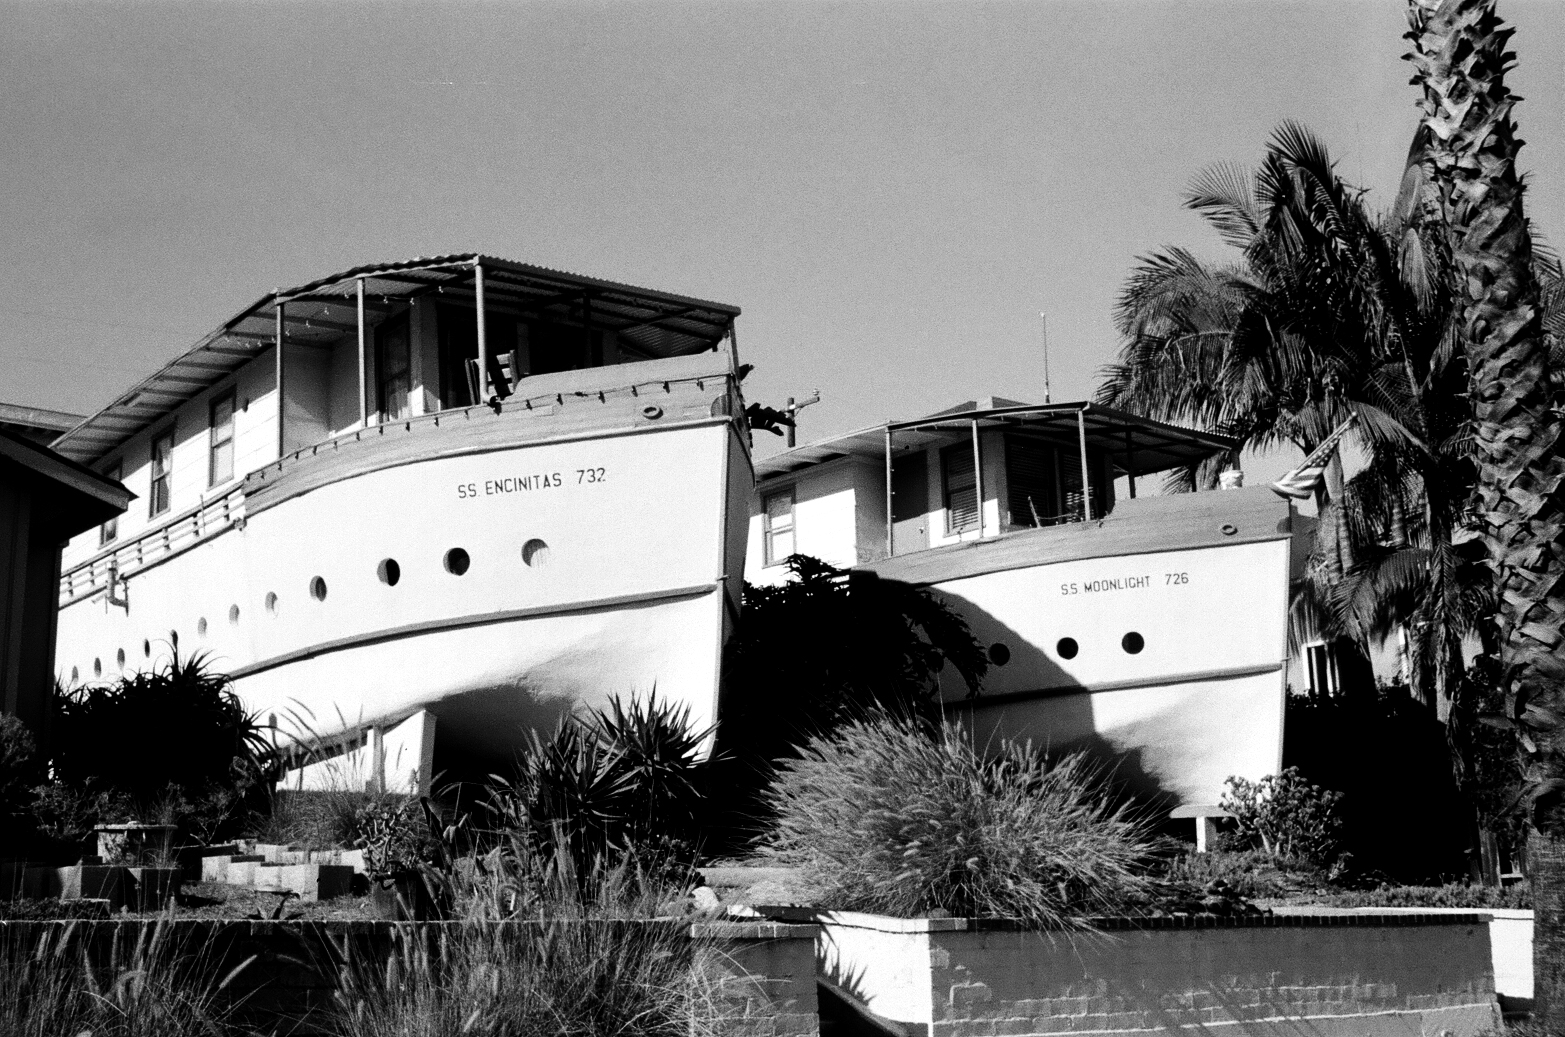 The famous Encinitas Boat Houses.